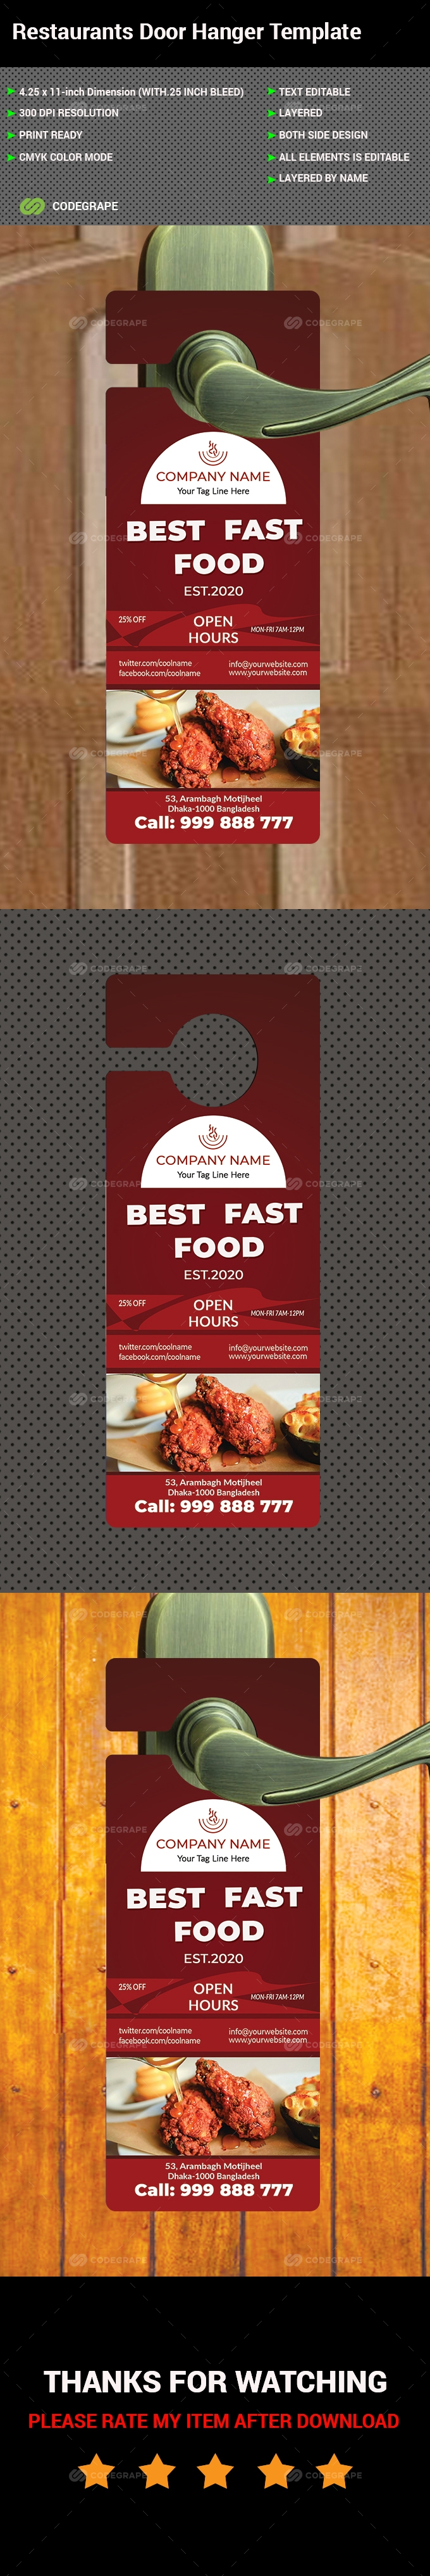 Restaurants Door Hangers Template